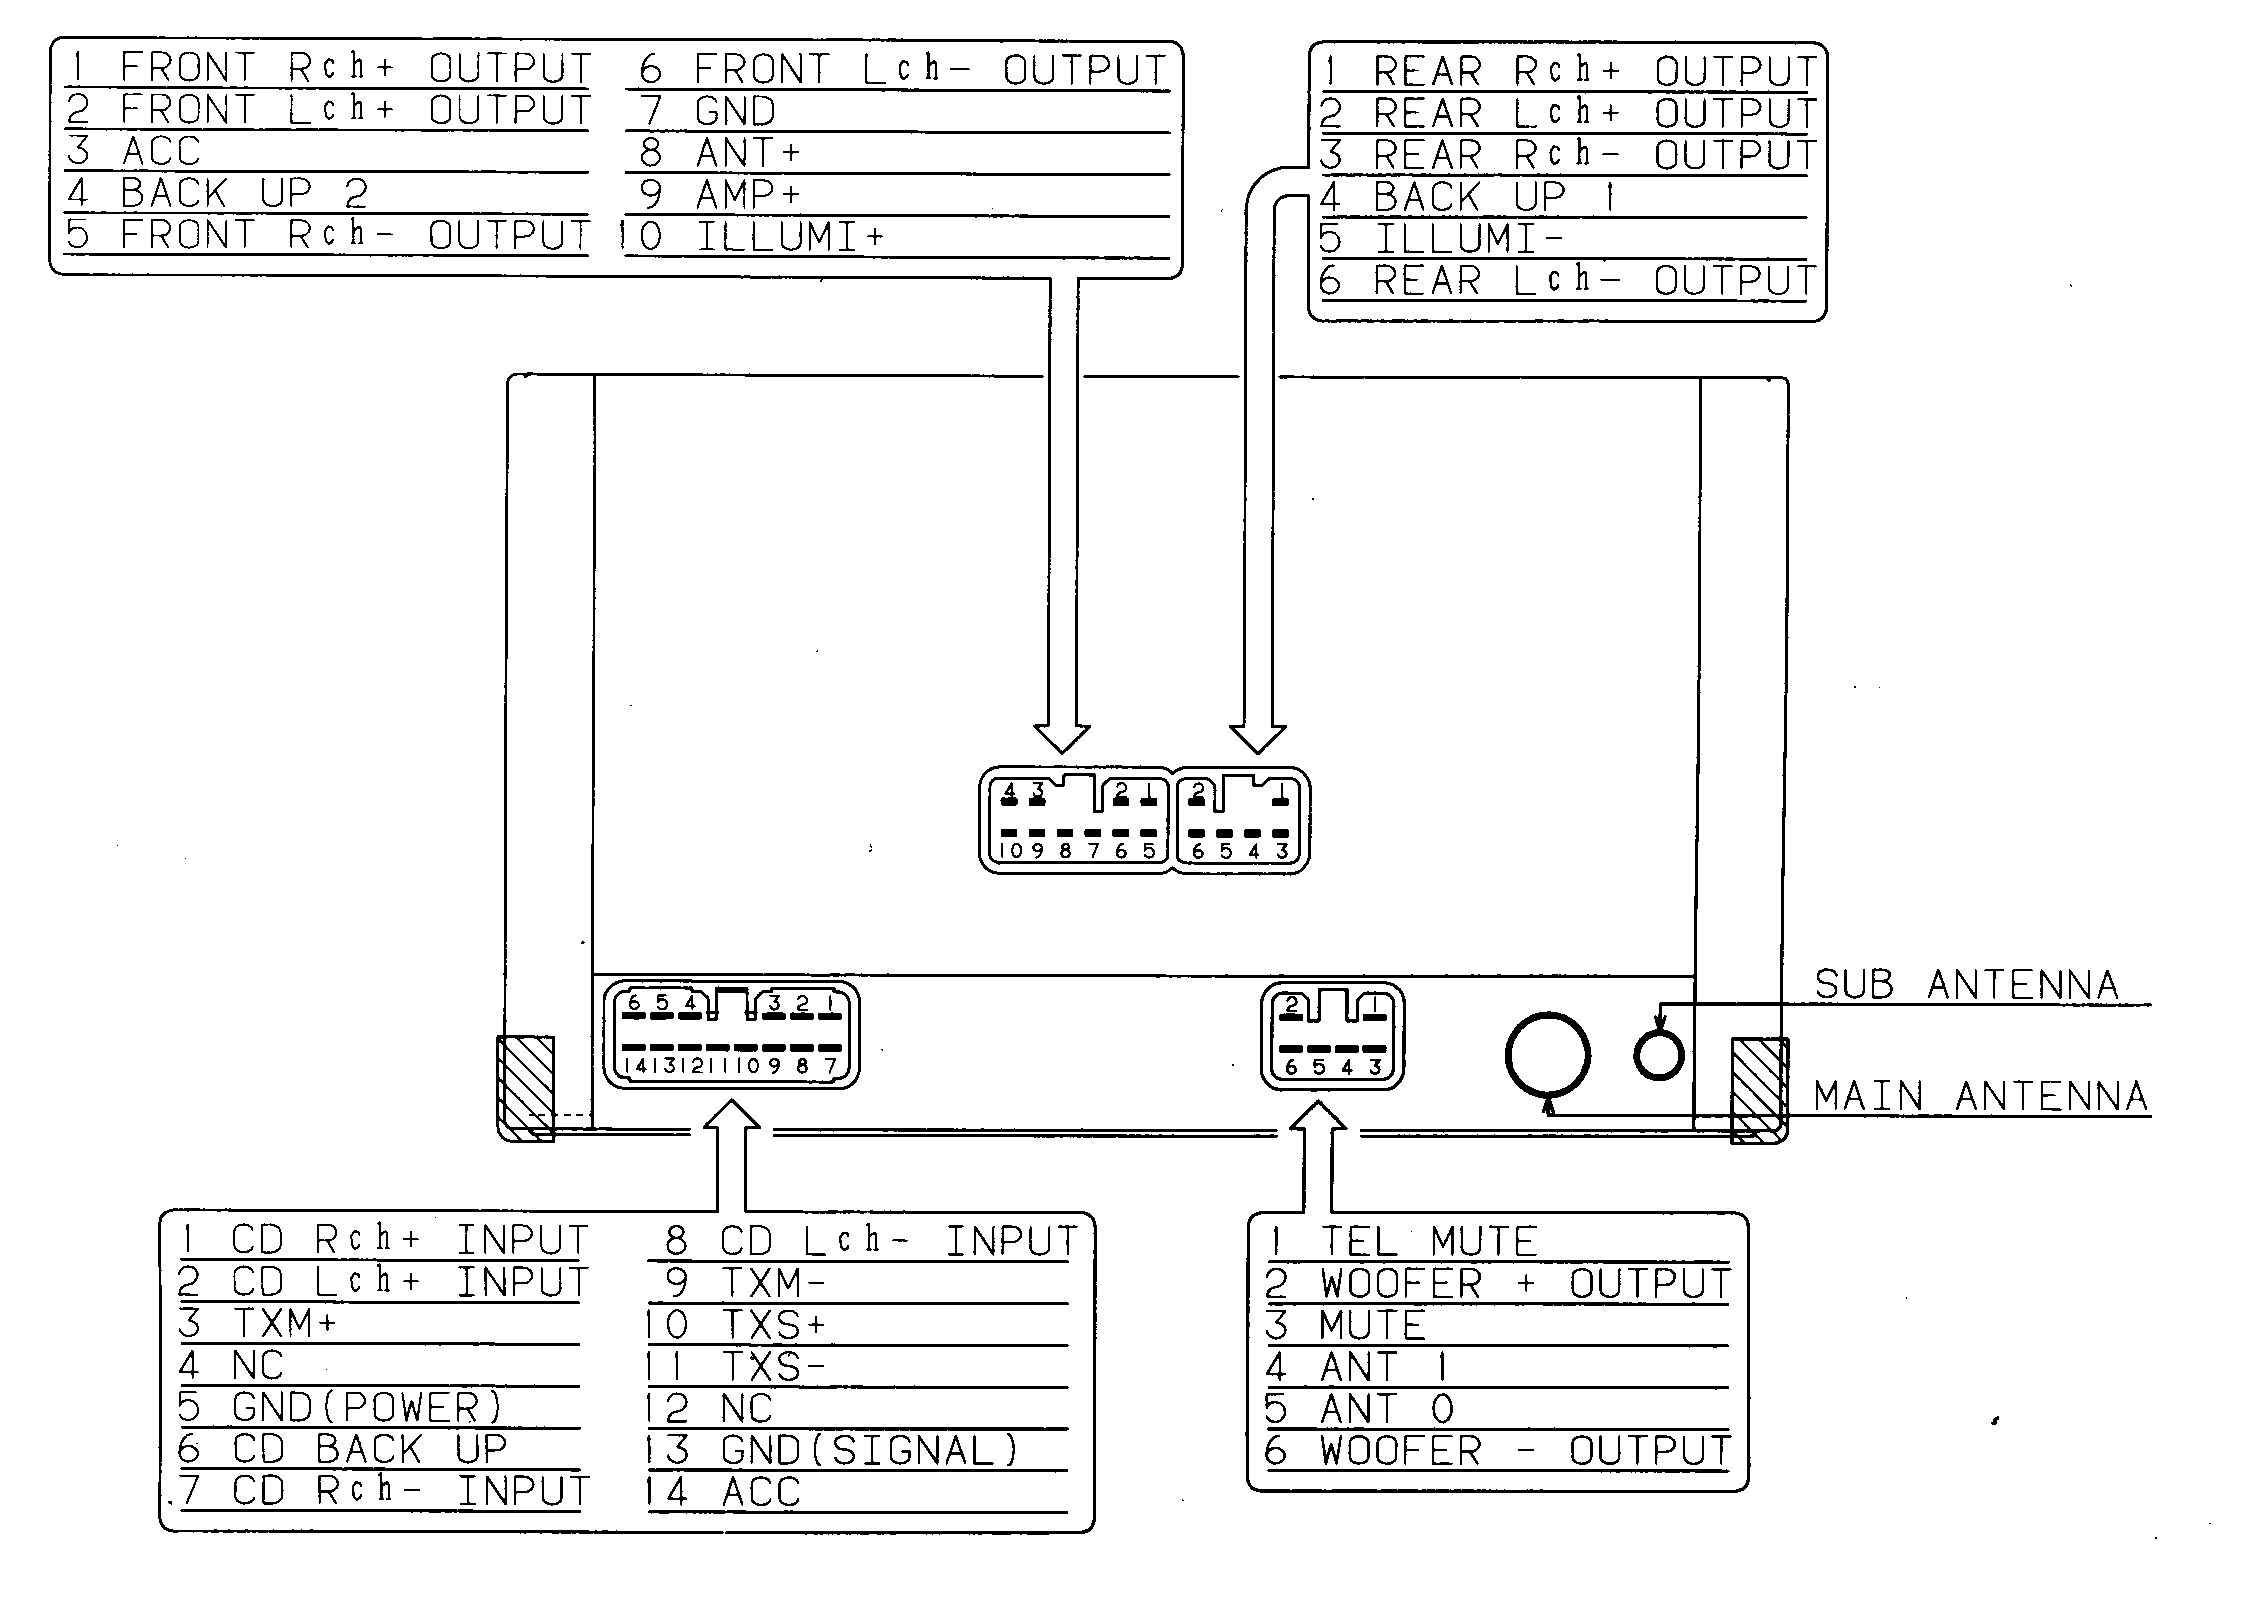 98 lexus gs300 wiring diagram basic wiring diagram u2022 rh rnetcomputer co 1998 lexus gs400 wiring diagram 1998 Lexus LX470 Wiring